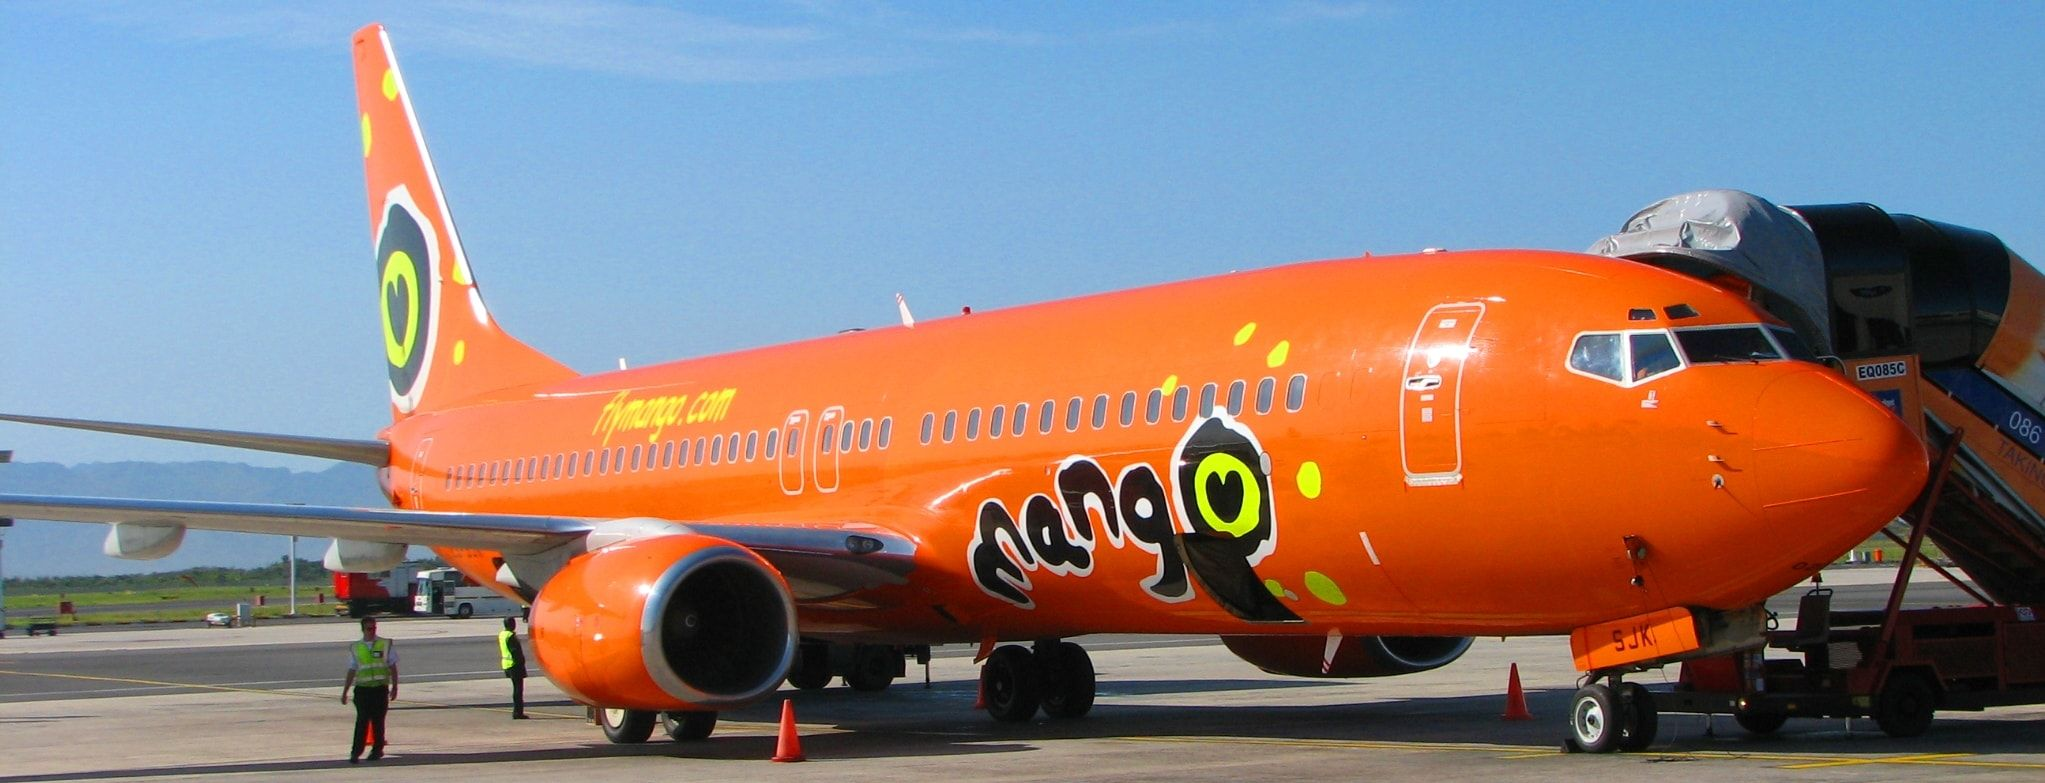 Mango Airline Book with Mango airlines